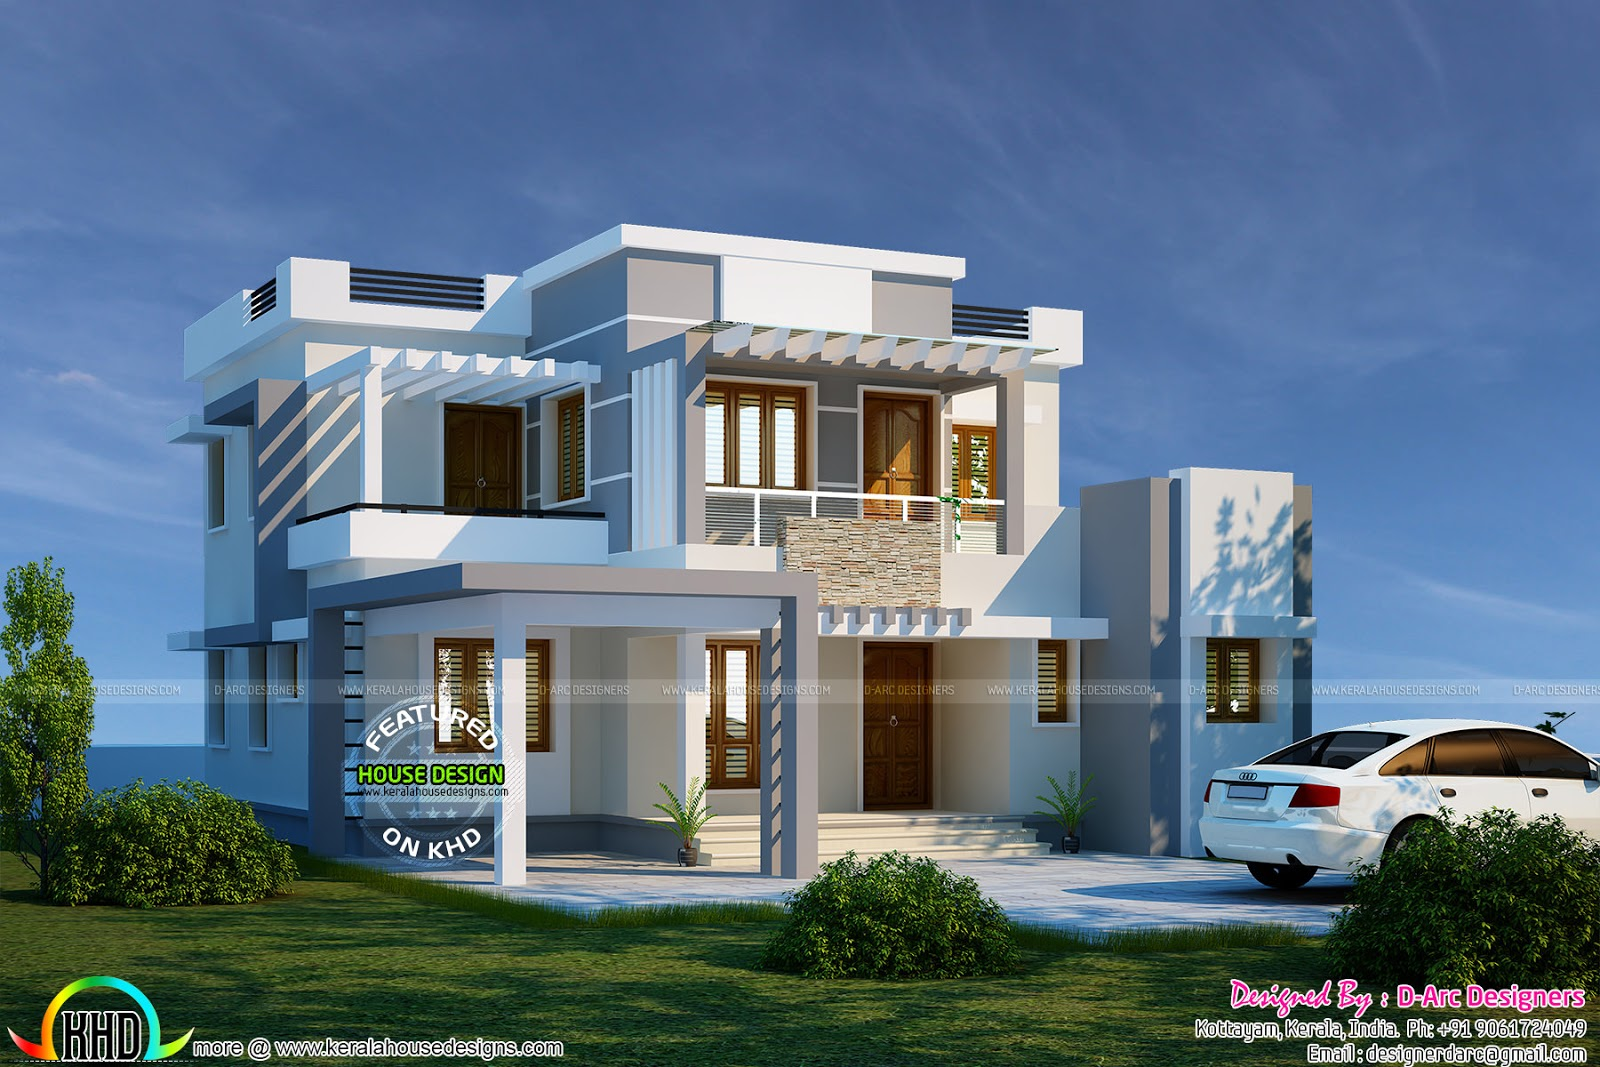 house-design-darch-designers.jpg